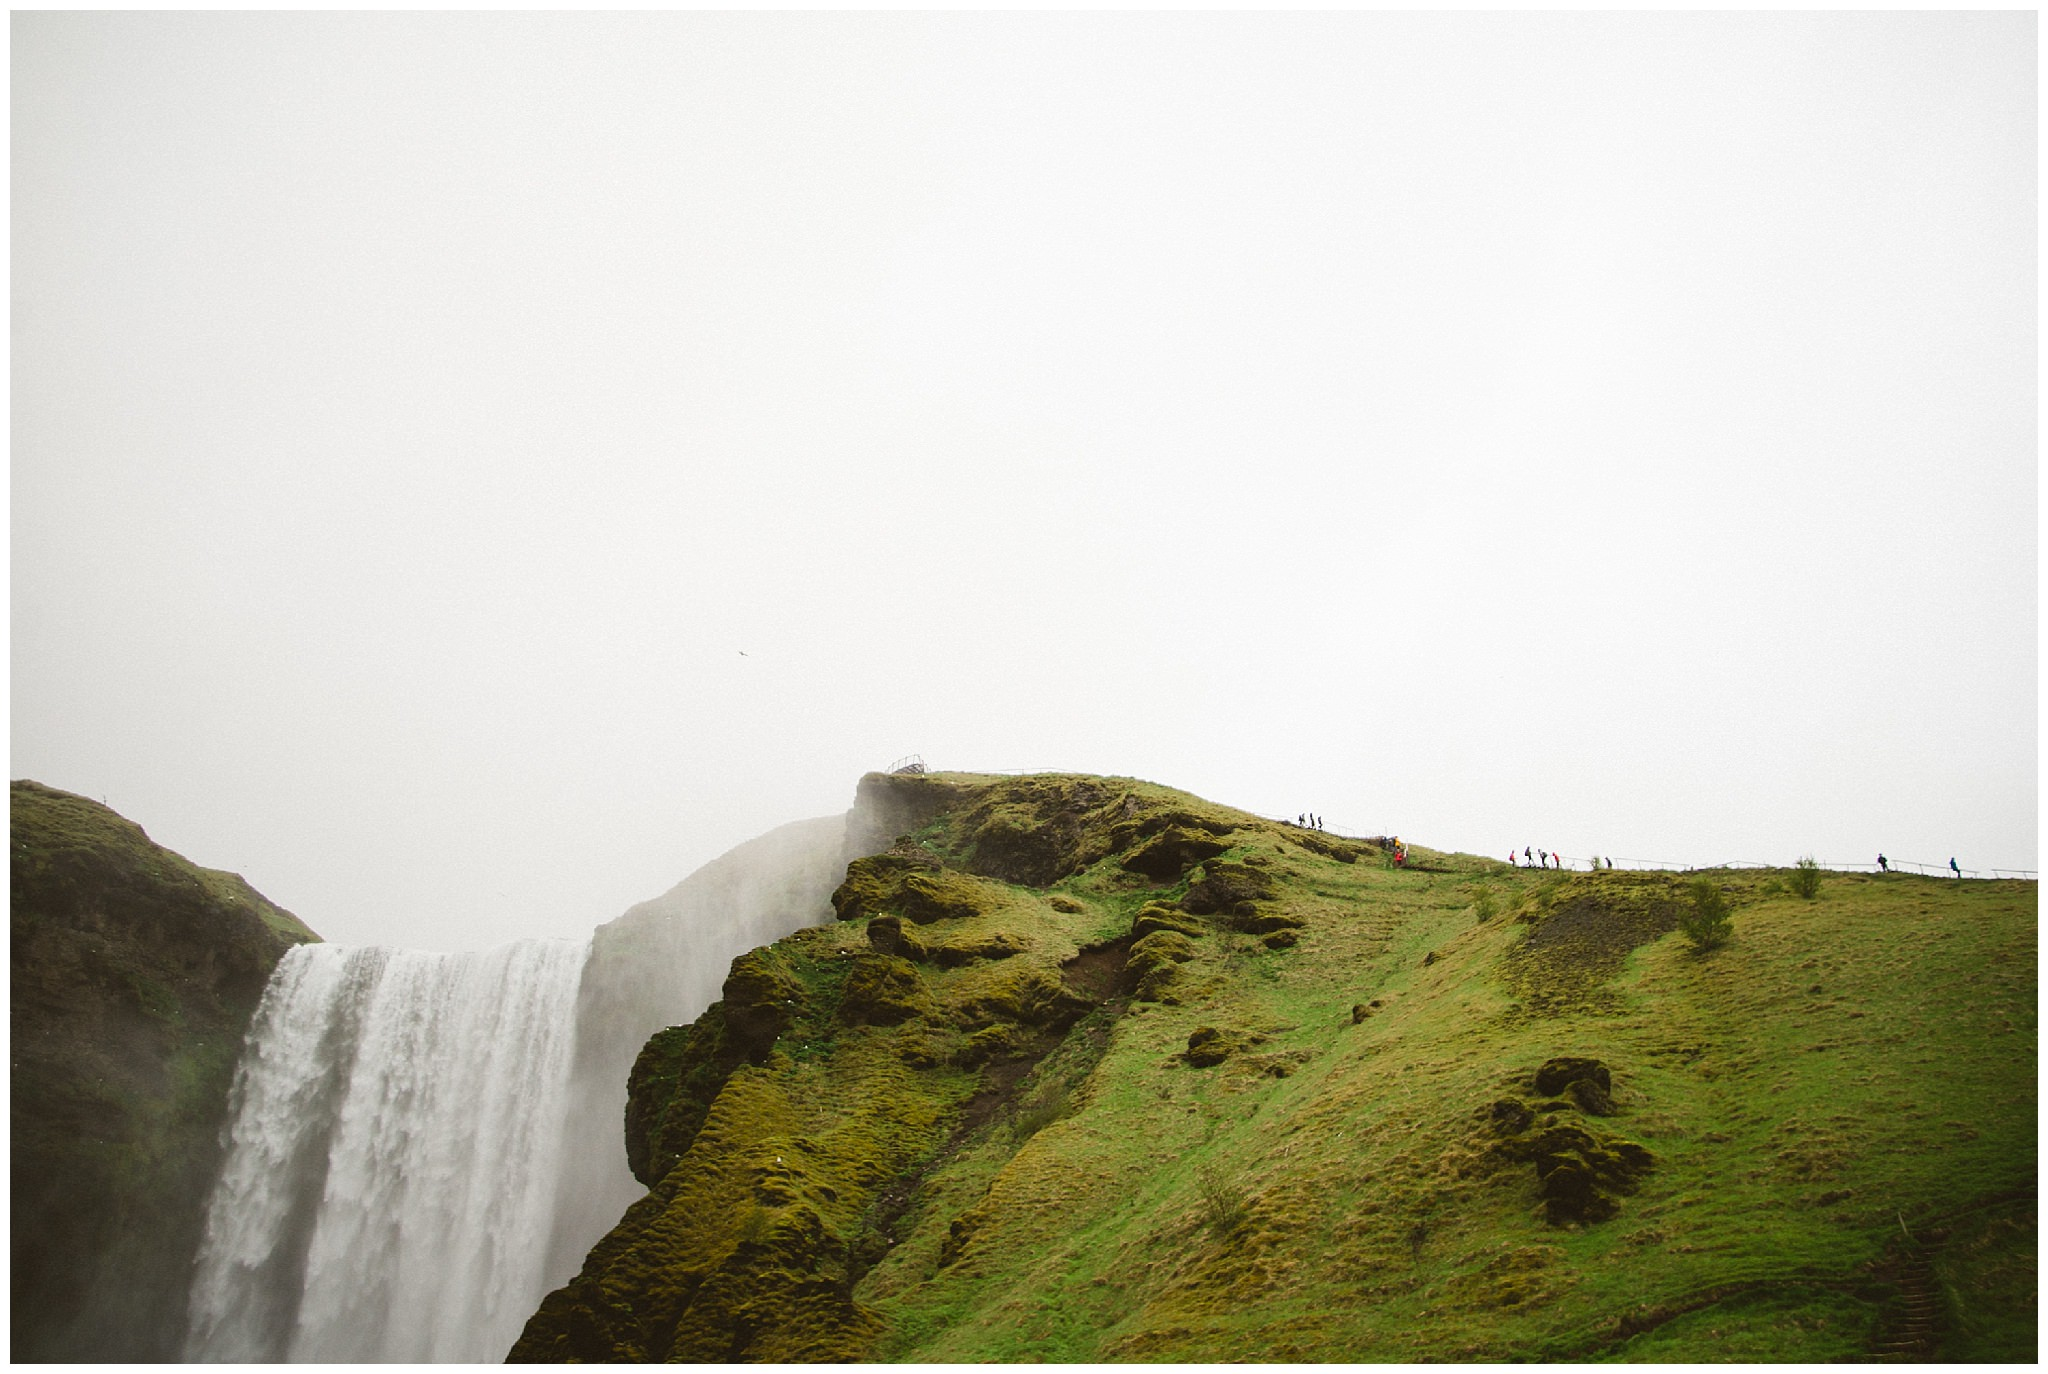 Iceland, Iceland wedding photographer, destination wedding photographer, travel photography, bc wedding photographer, Vancouver wedding photographer, Ronnie Lee Hill Photography, Skogafoss, waterfall